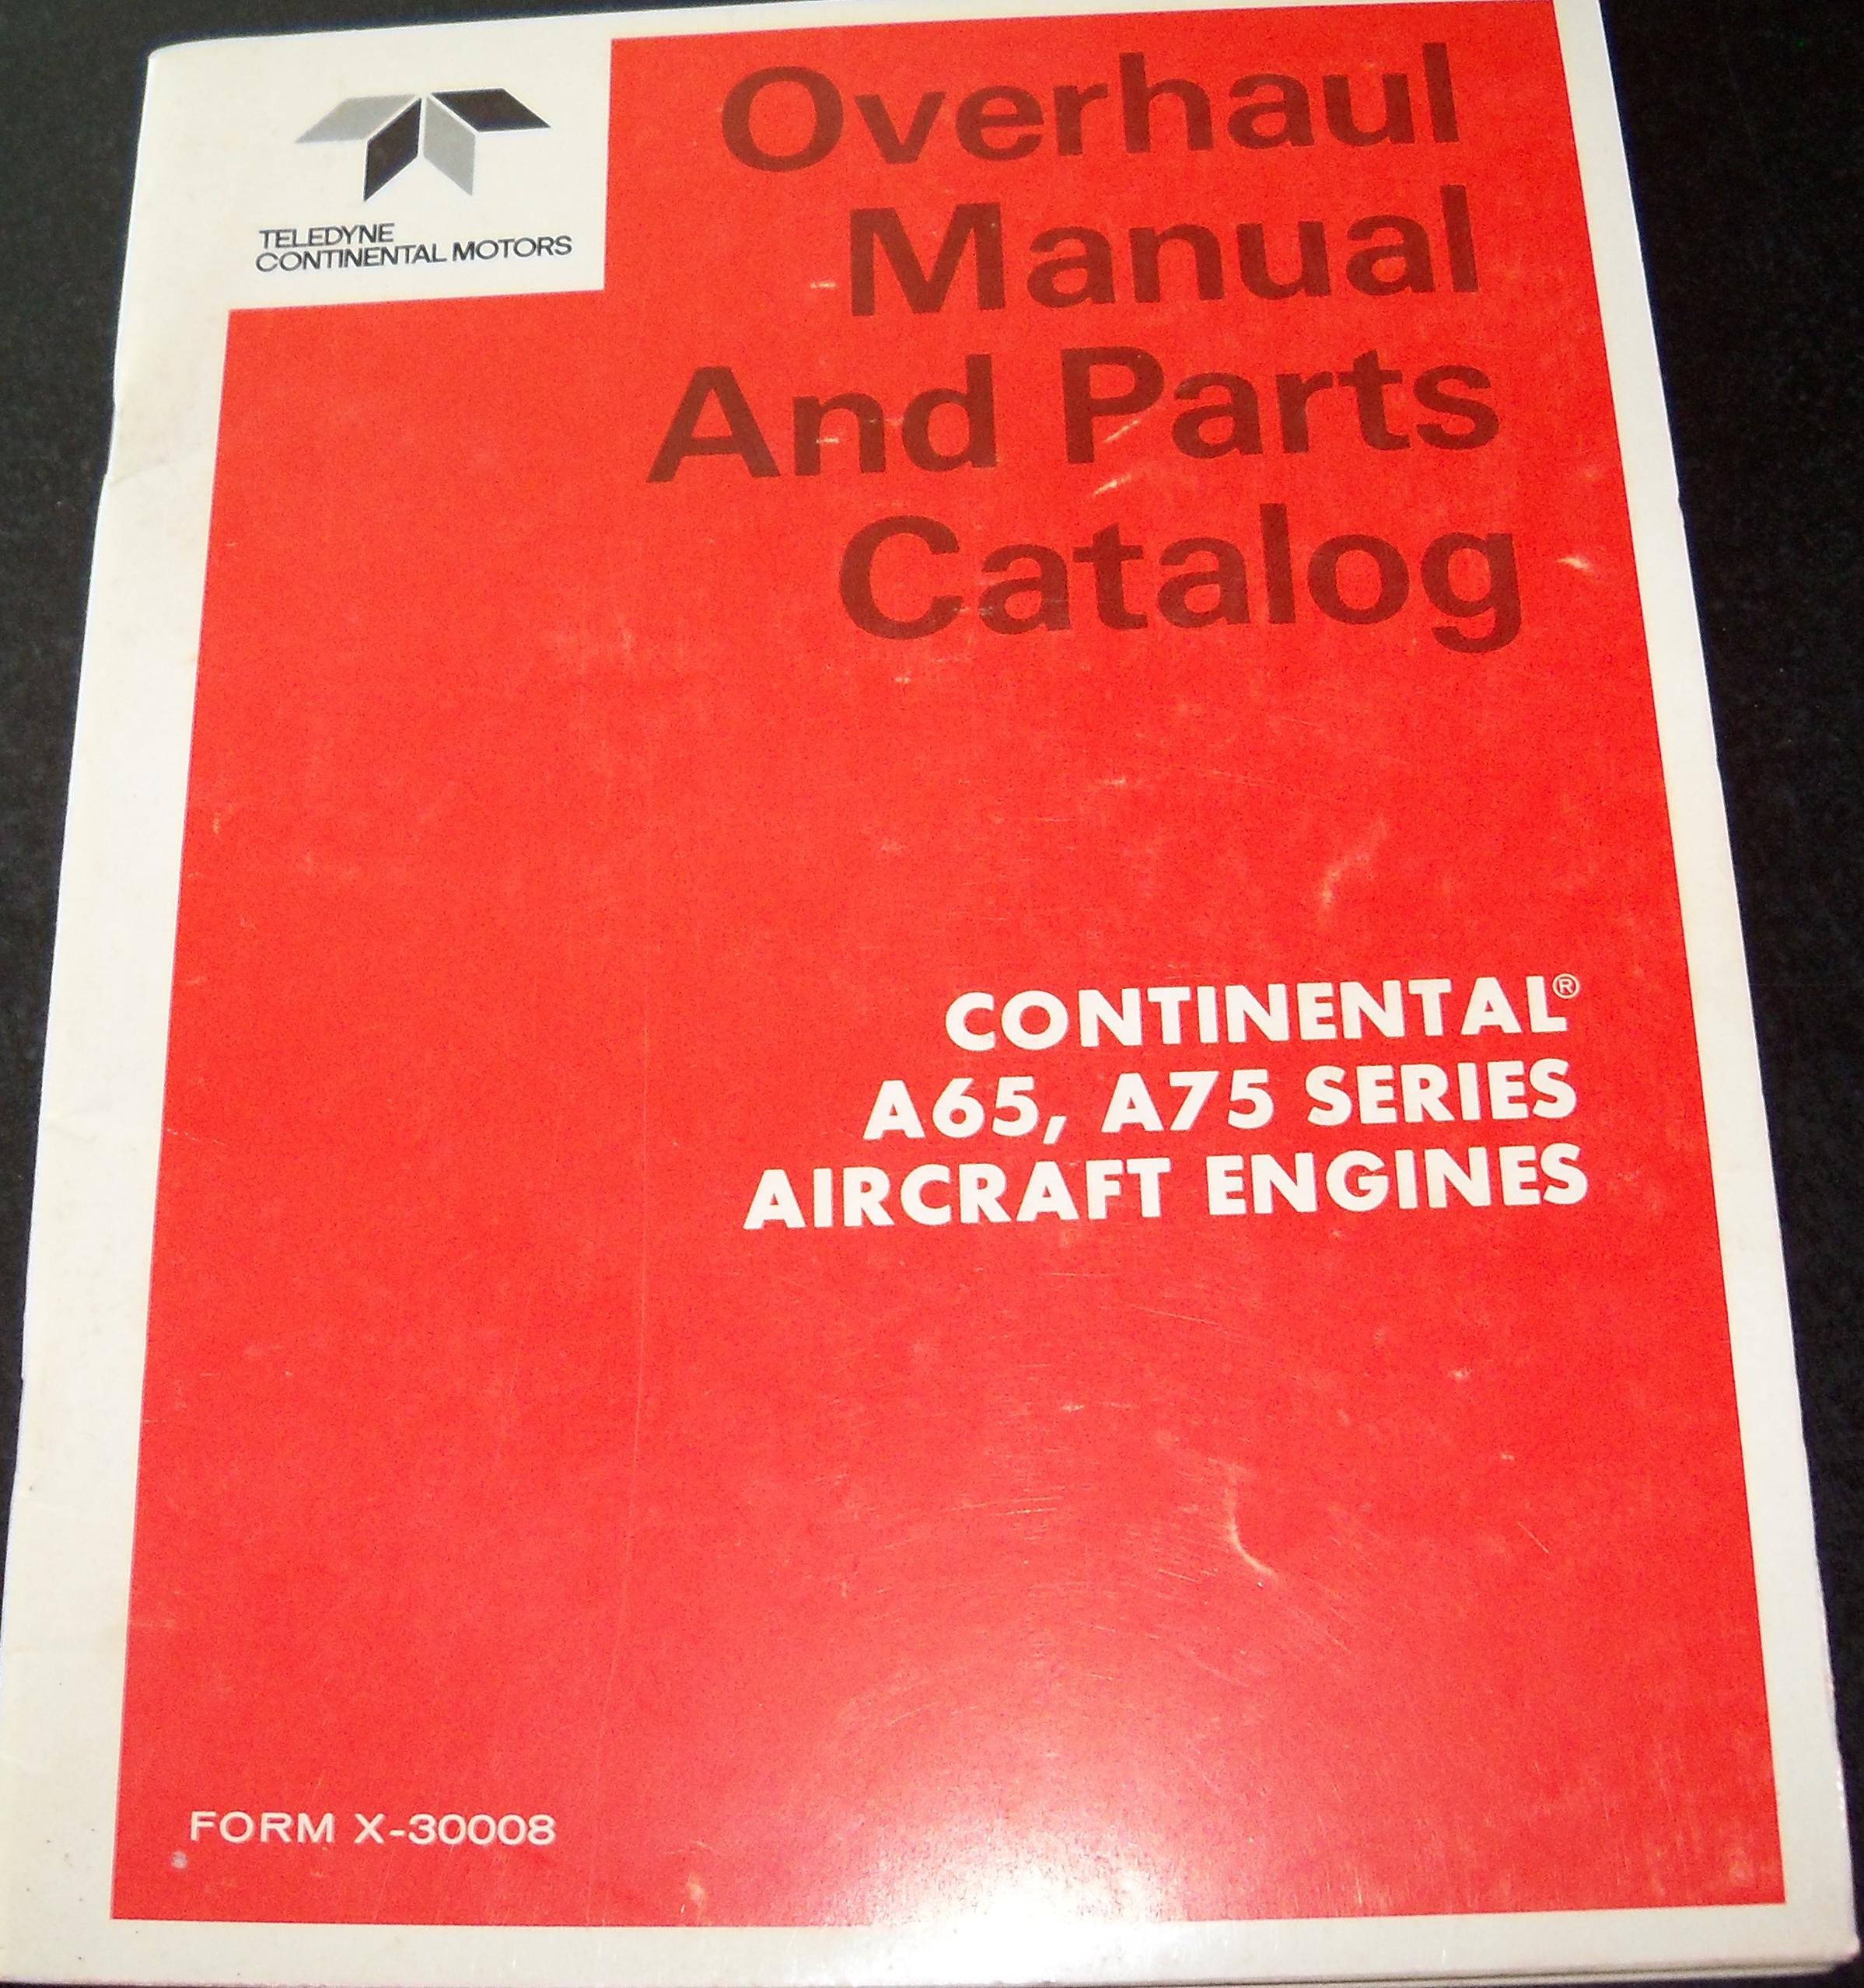 Overhaul Manual and Parts Catalog: Continental A65, A75